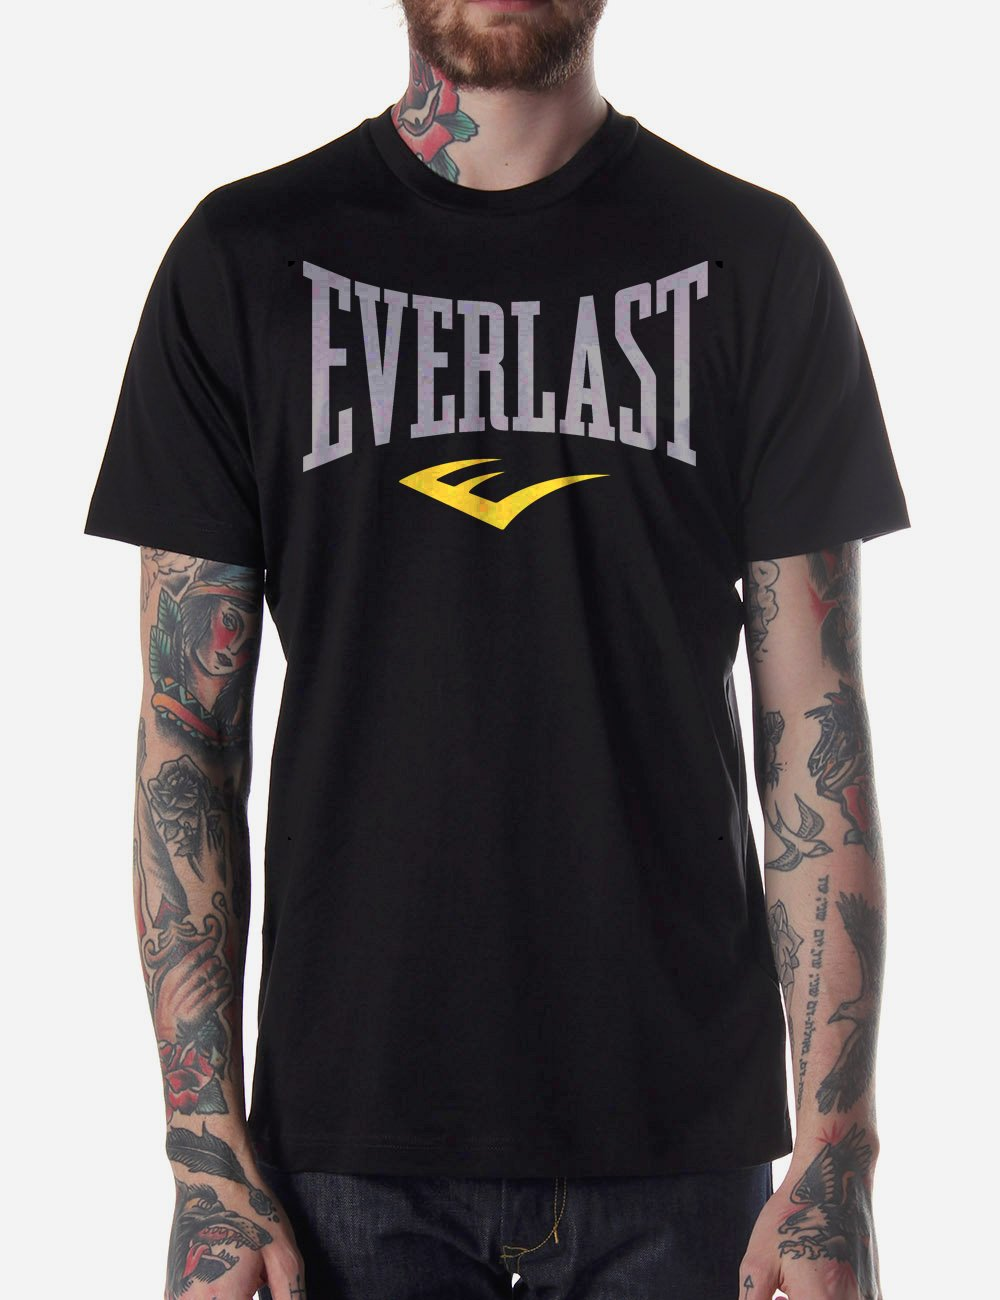 Black Men Tshirt EVERLAST Black Tshirt For Men